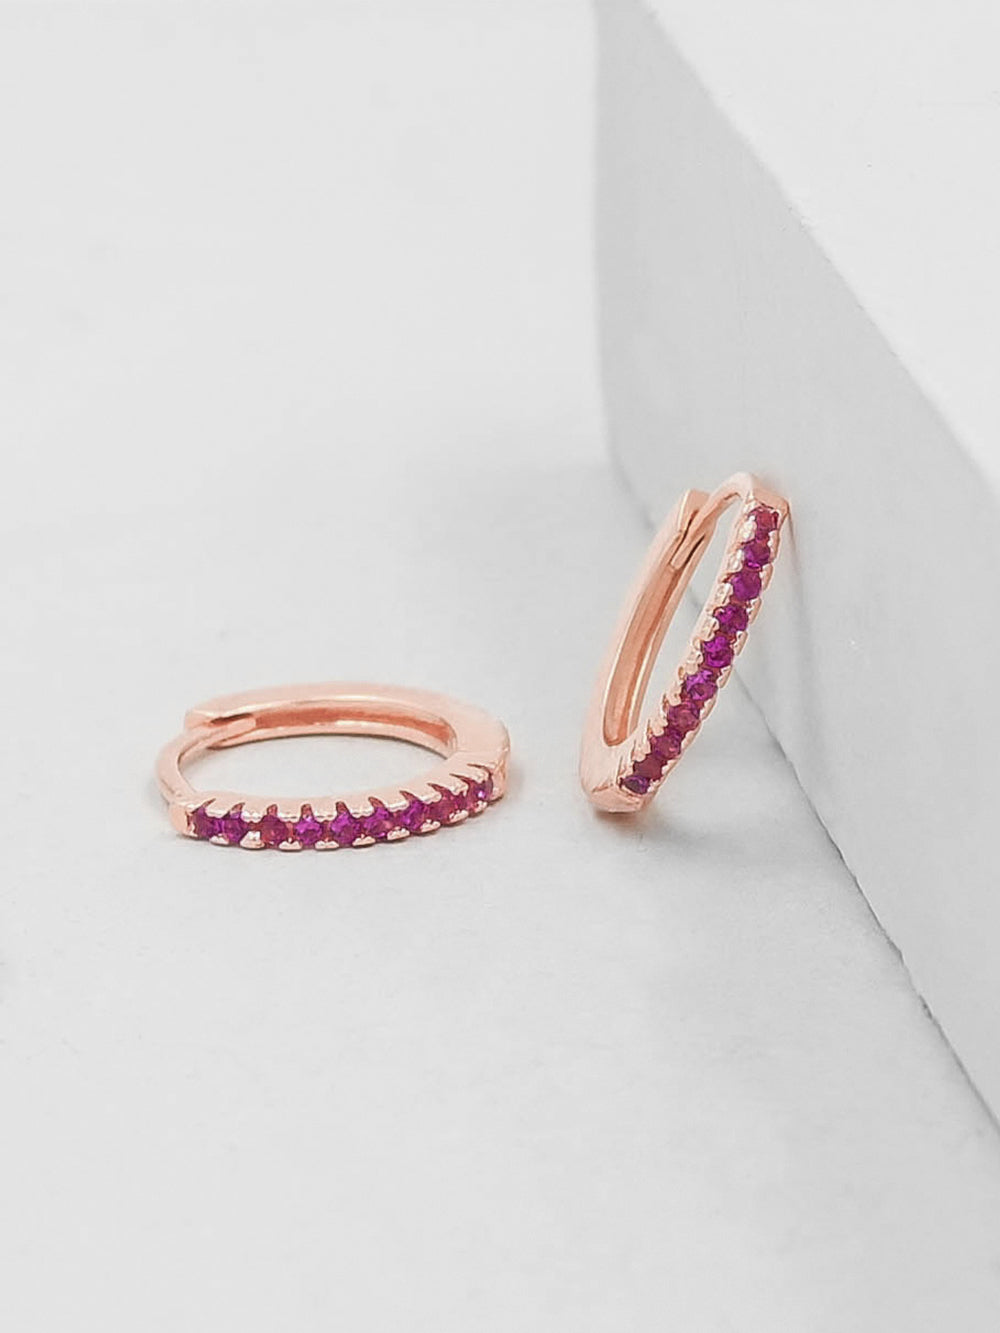 Super Dainty Hoop Huggie Earrings with Pink Ruby Tiny Round Cubic Zirconia by The Faint Hearted Jewelry